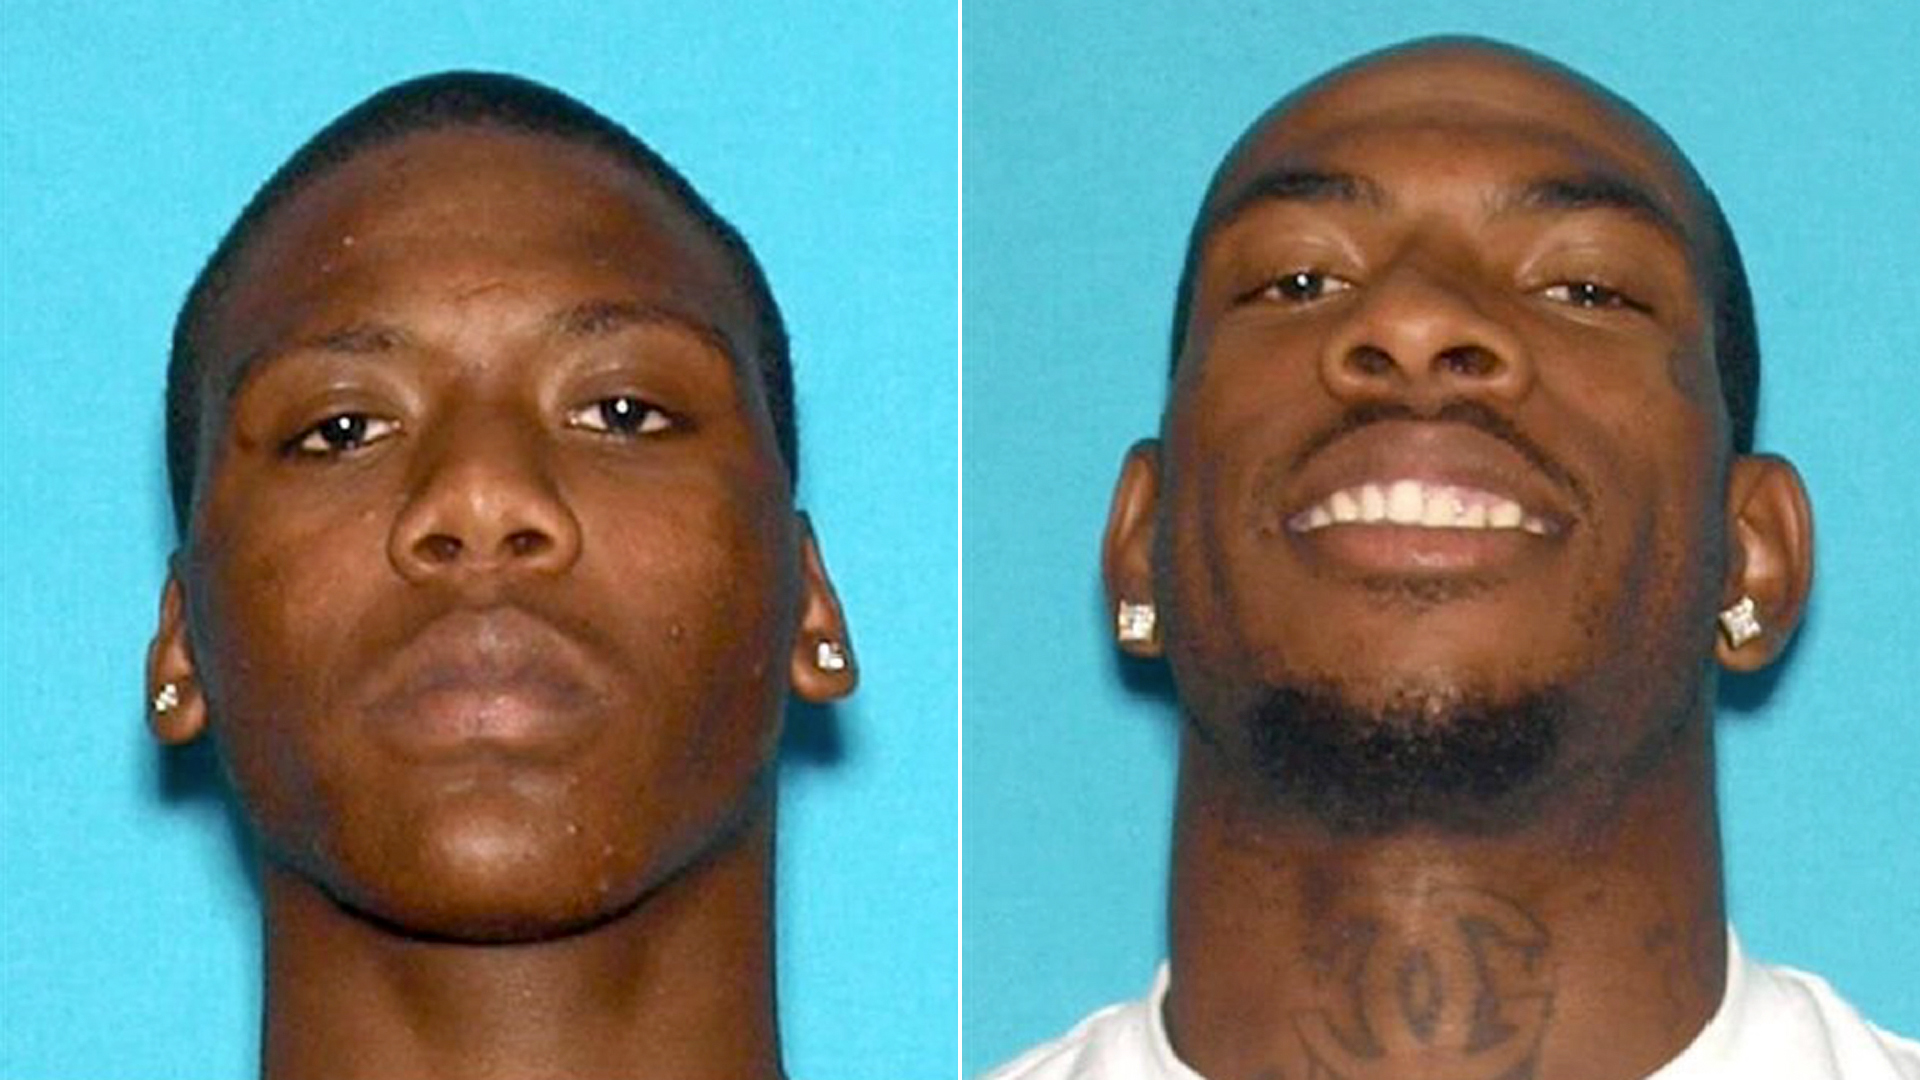 Christopher Lommie Jackson, 21, of San Bernardino and Terrence Edward Kenny, 24, of San Bernardino, pictured in photos released by the San Bernardino County Sheriff's Department on Nov. 20, 2019.